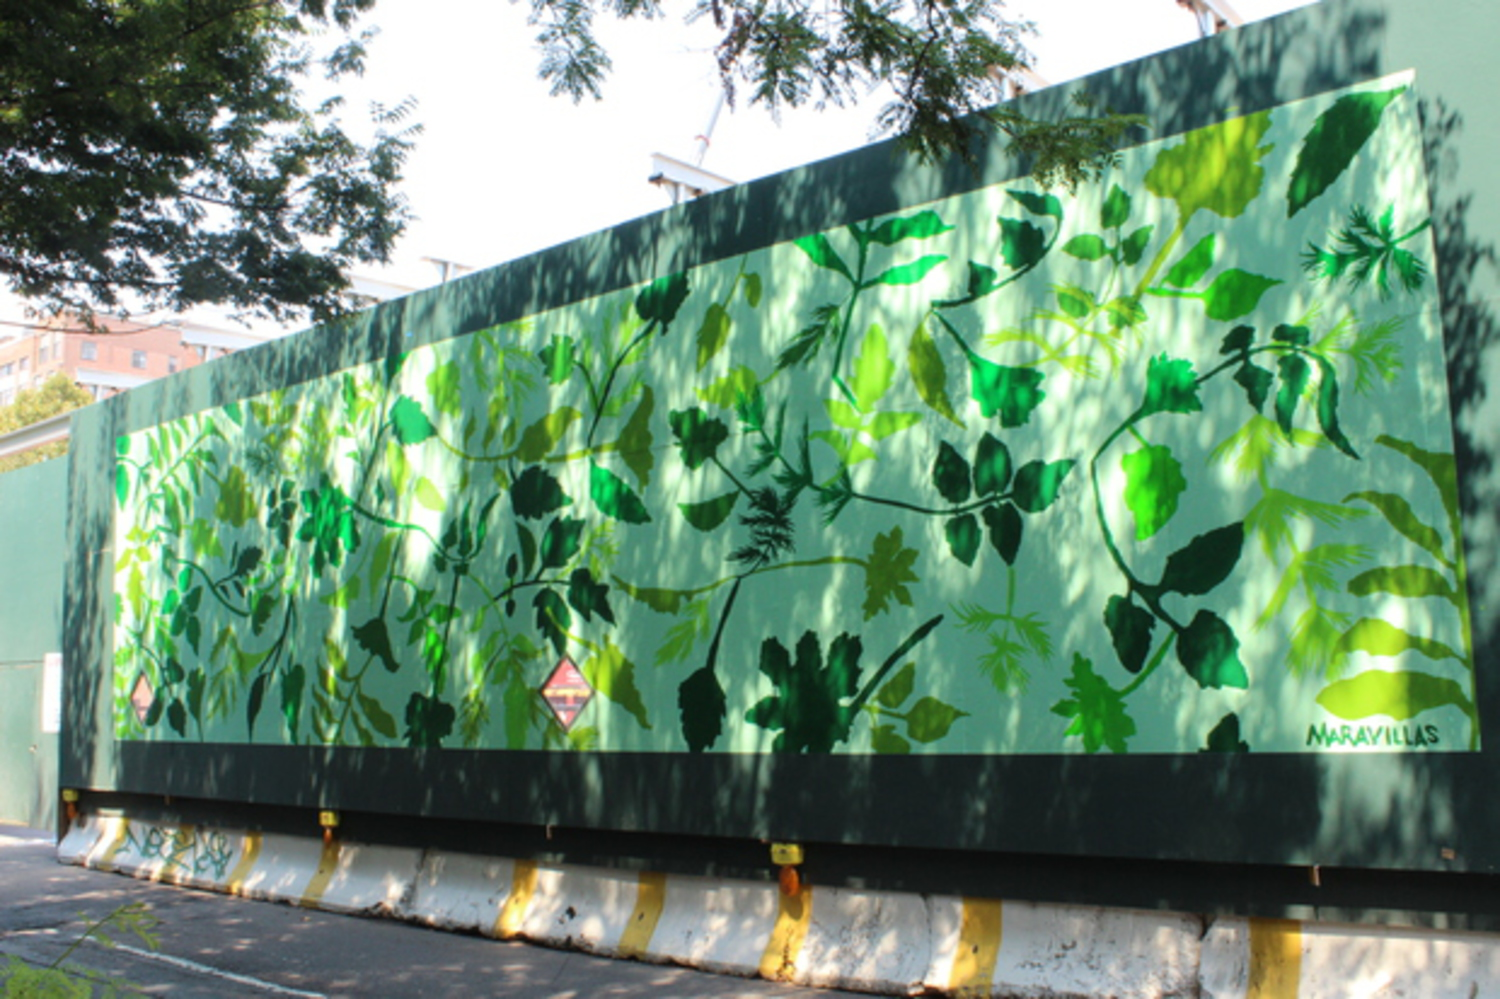 Artist Jennifer Maravillas created a mural depicting lush foliage.